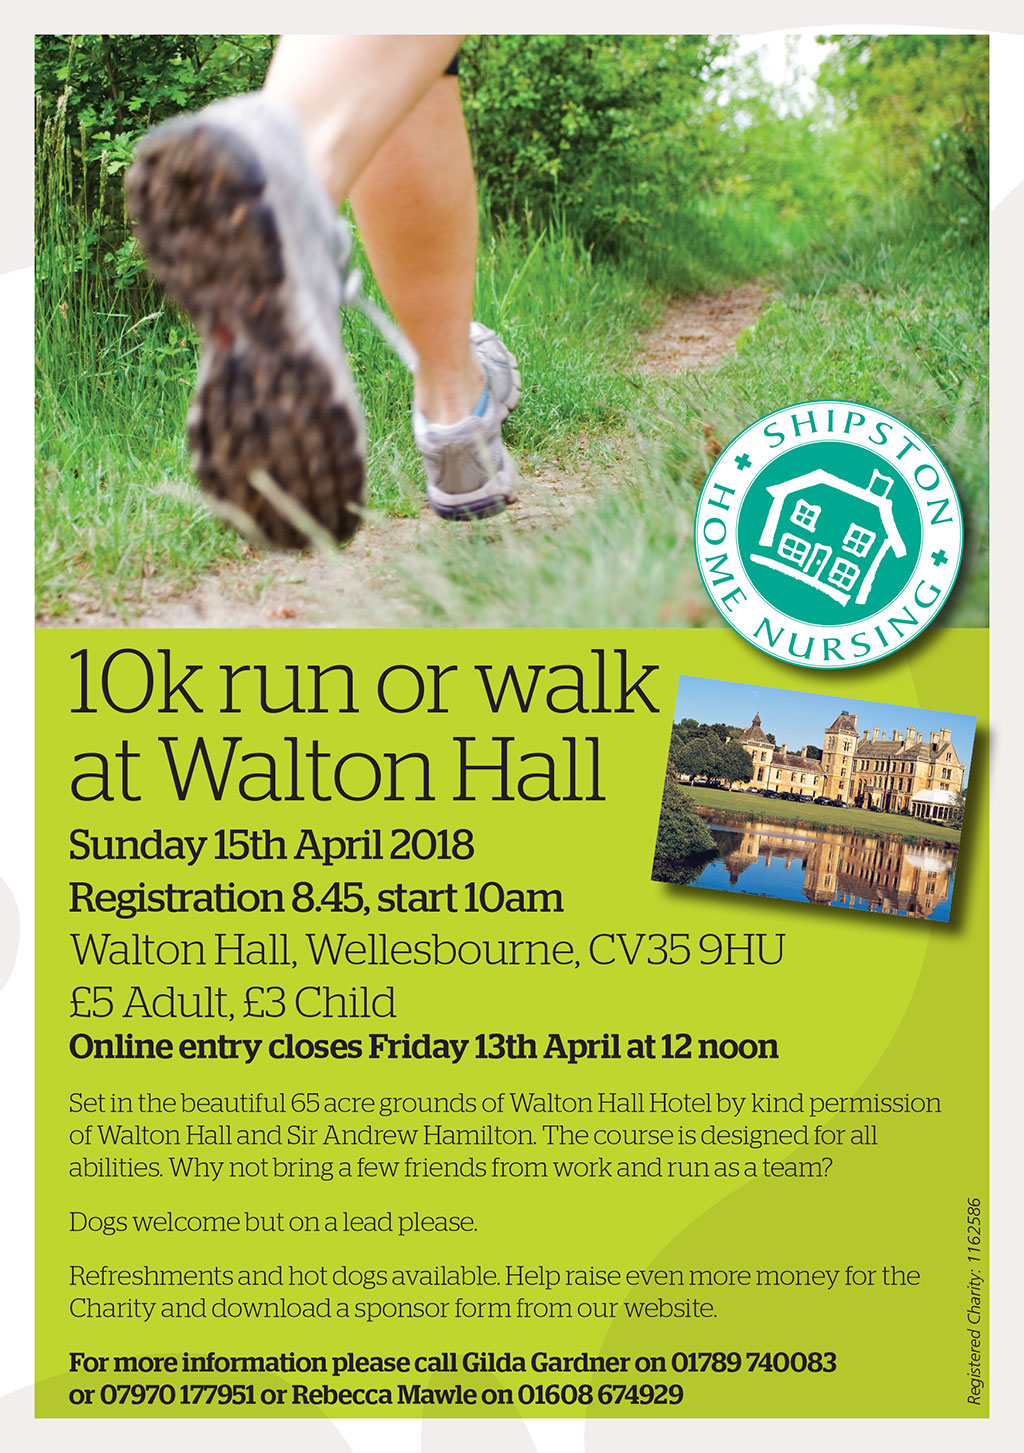 10k Run/Walk at Walton Hall